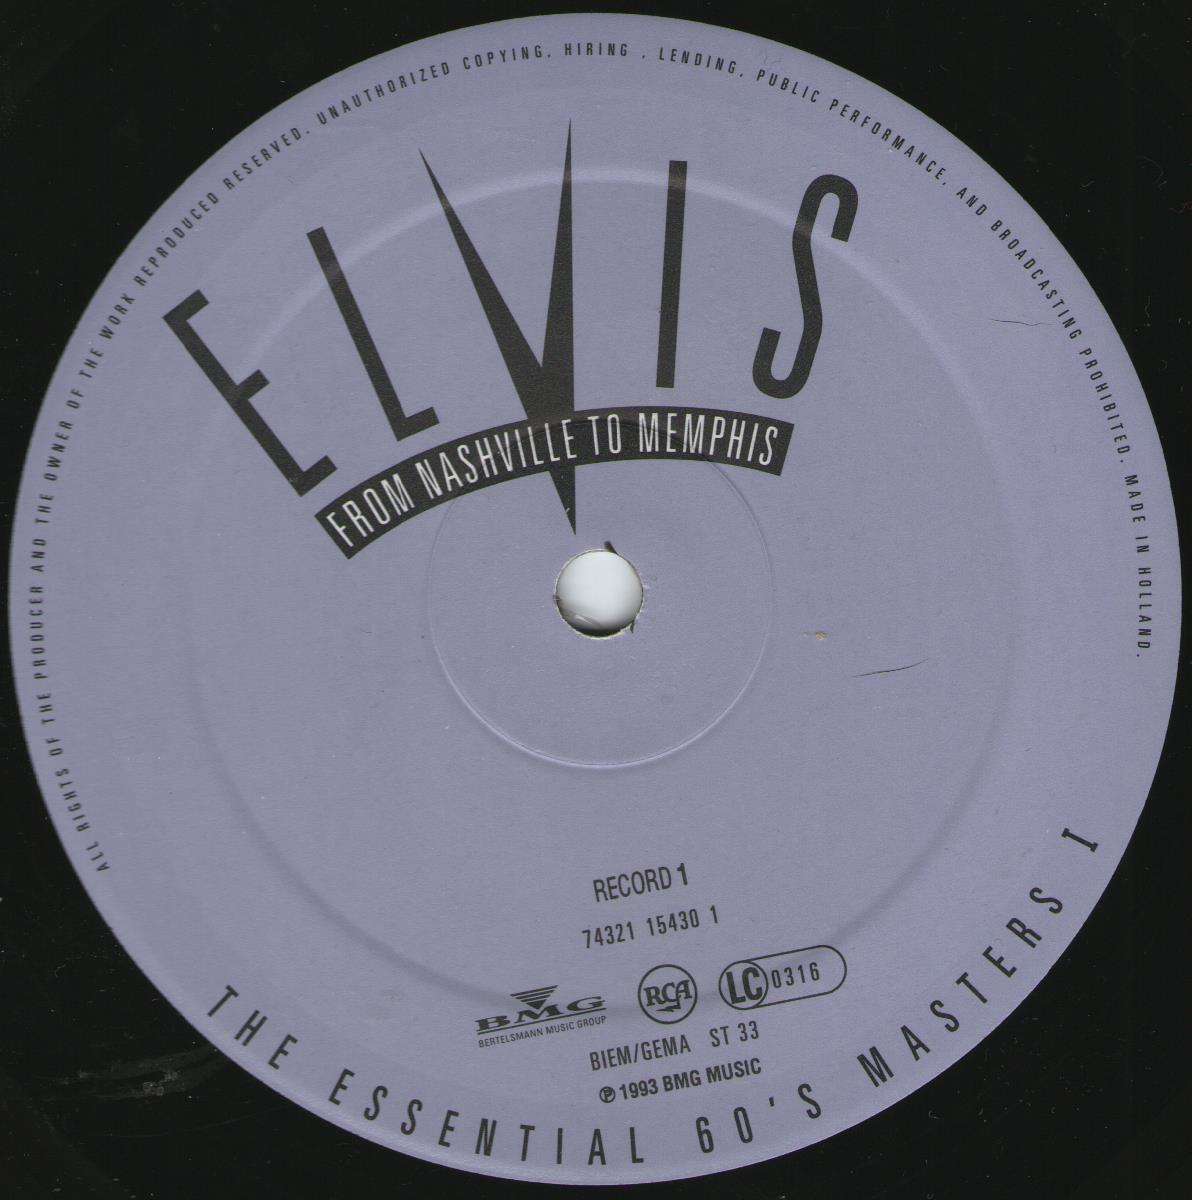 ELVIS - FROM NASHVILLE TO MEMPHIS - THE ESSENTIAL 60'S MASTERS Bildd3pw0